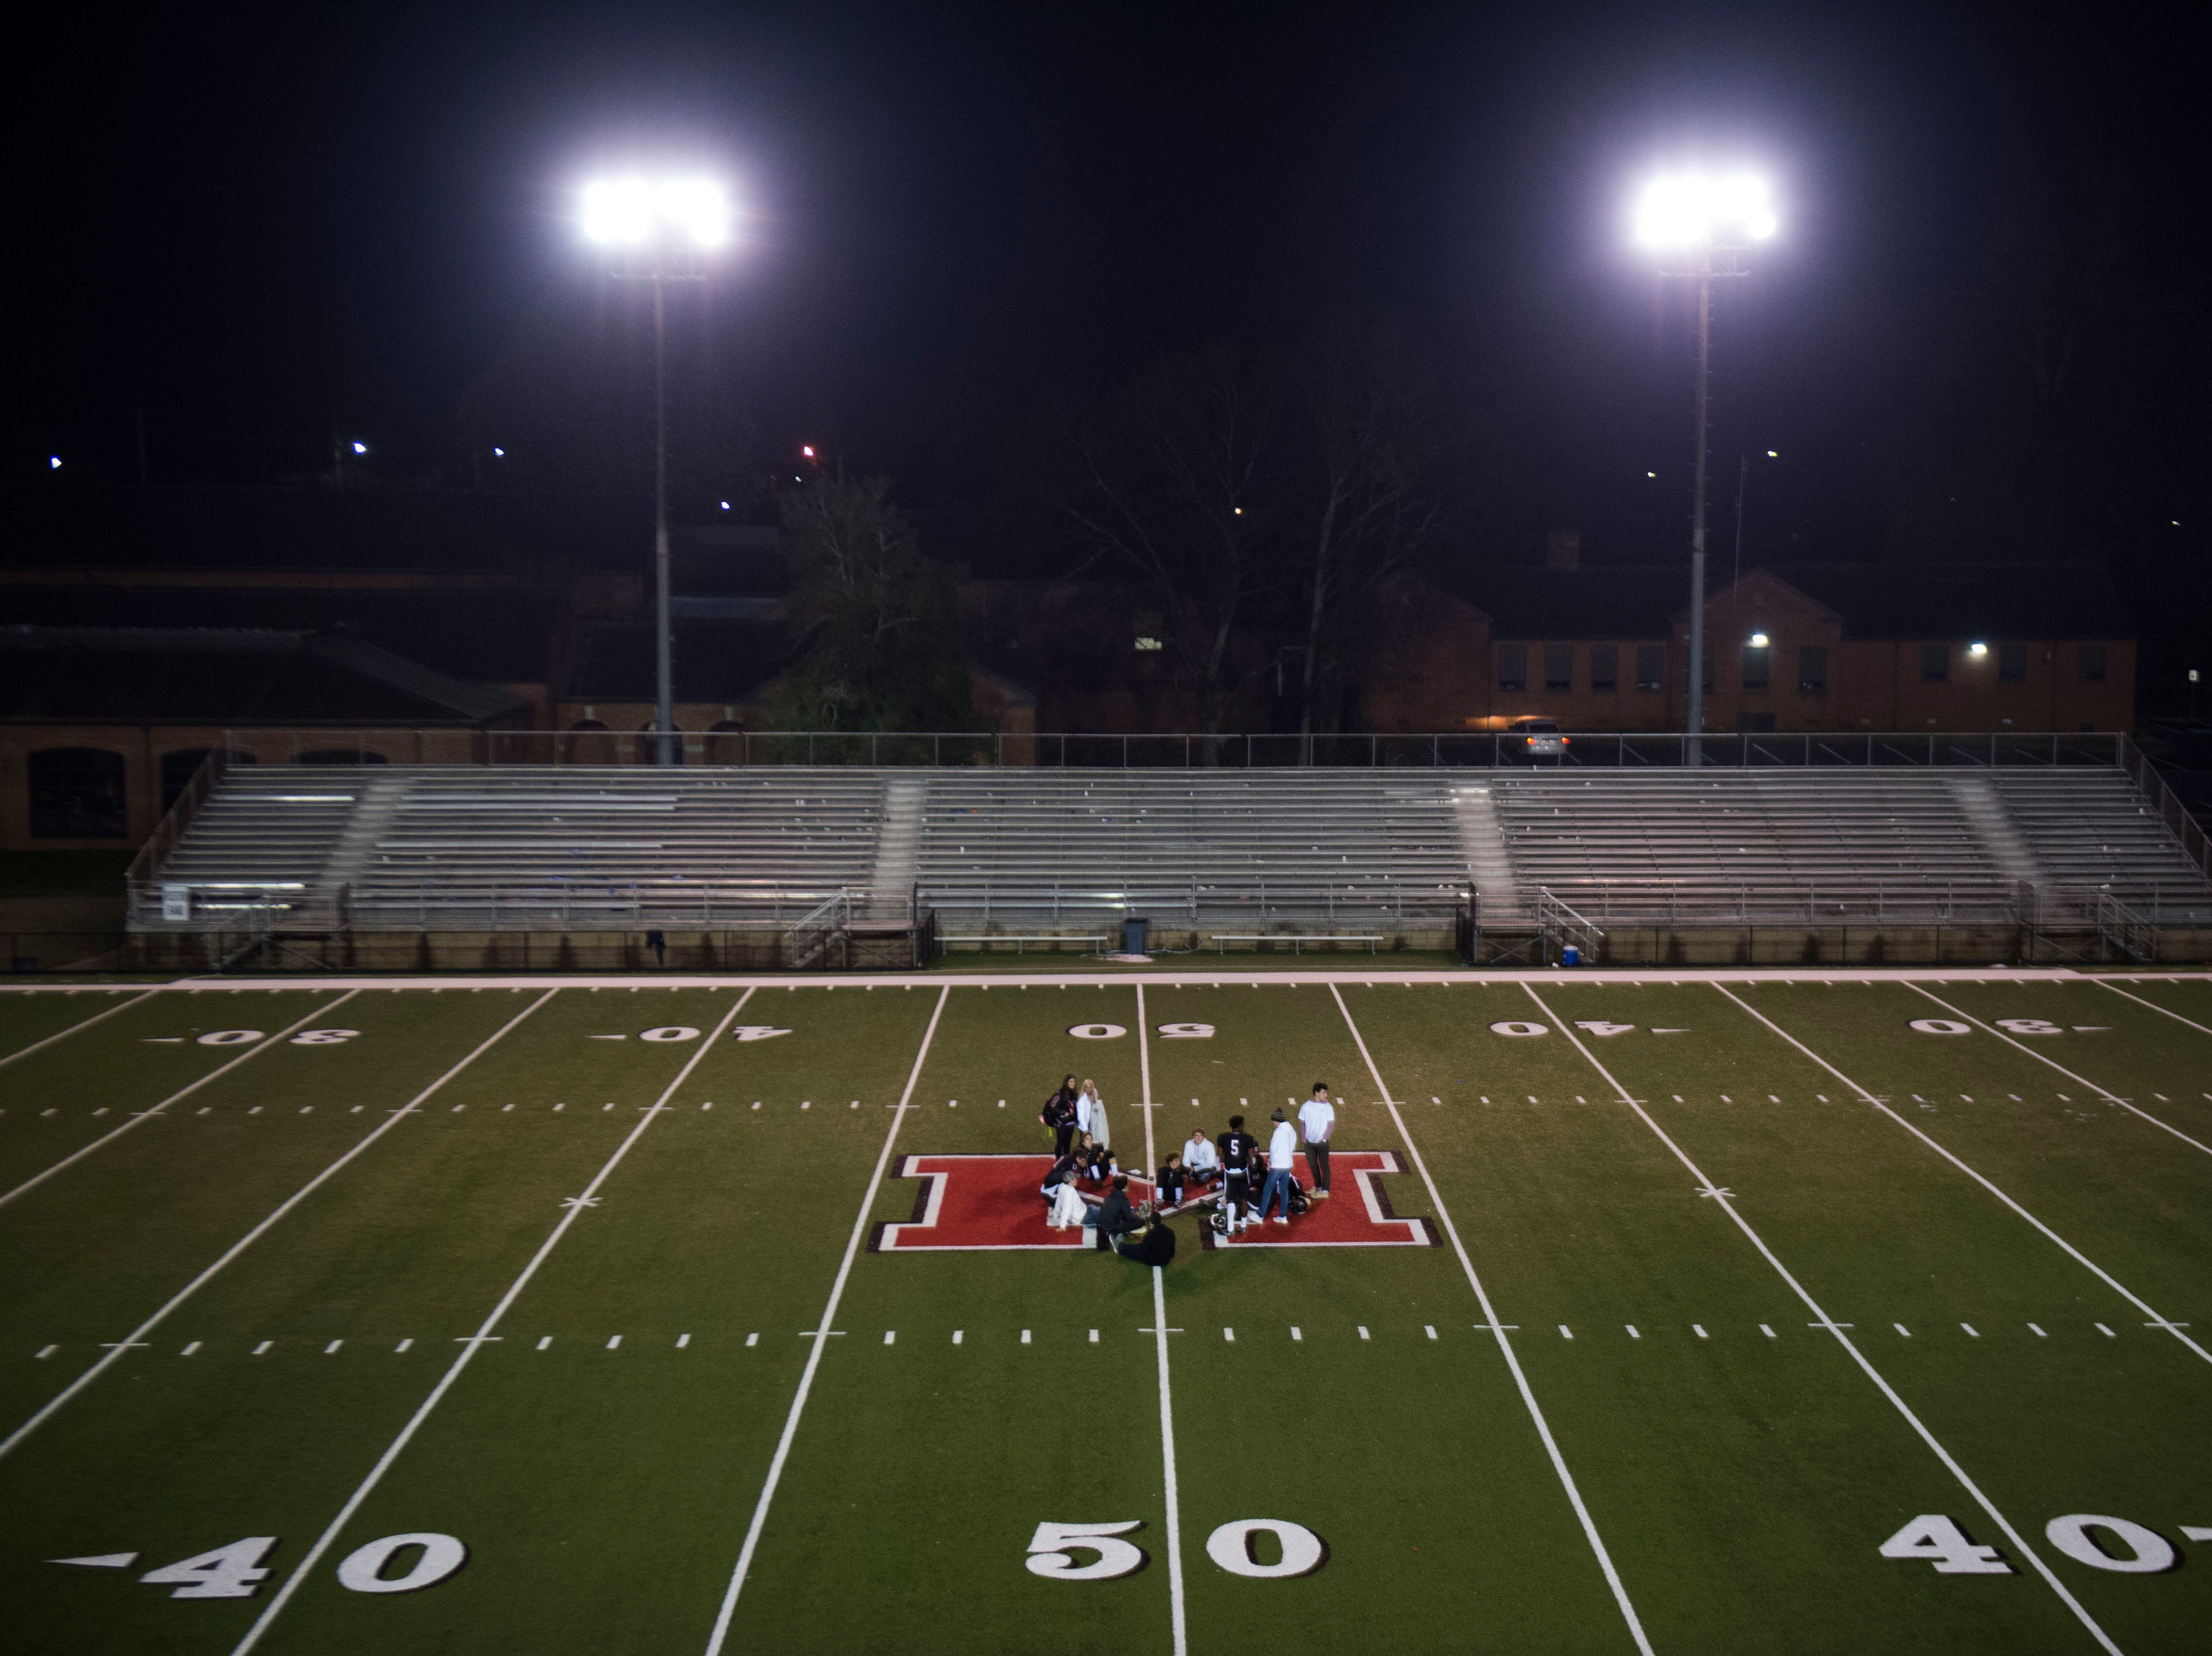 Senior Maryville players gather on the 50-yard-line after a 6A quarterfinal game between Maryville and Farragut at Maryville Friday, Nov. 16, 2018. Maryville defeated Farragut 26-10.